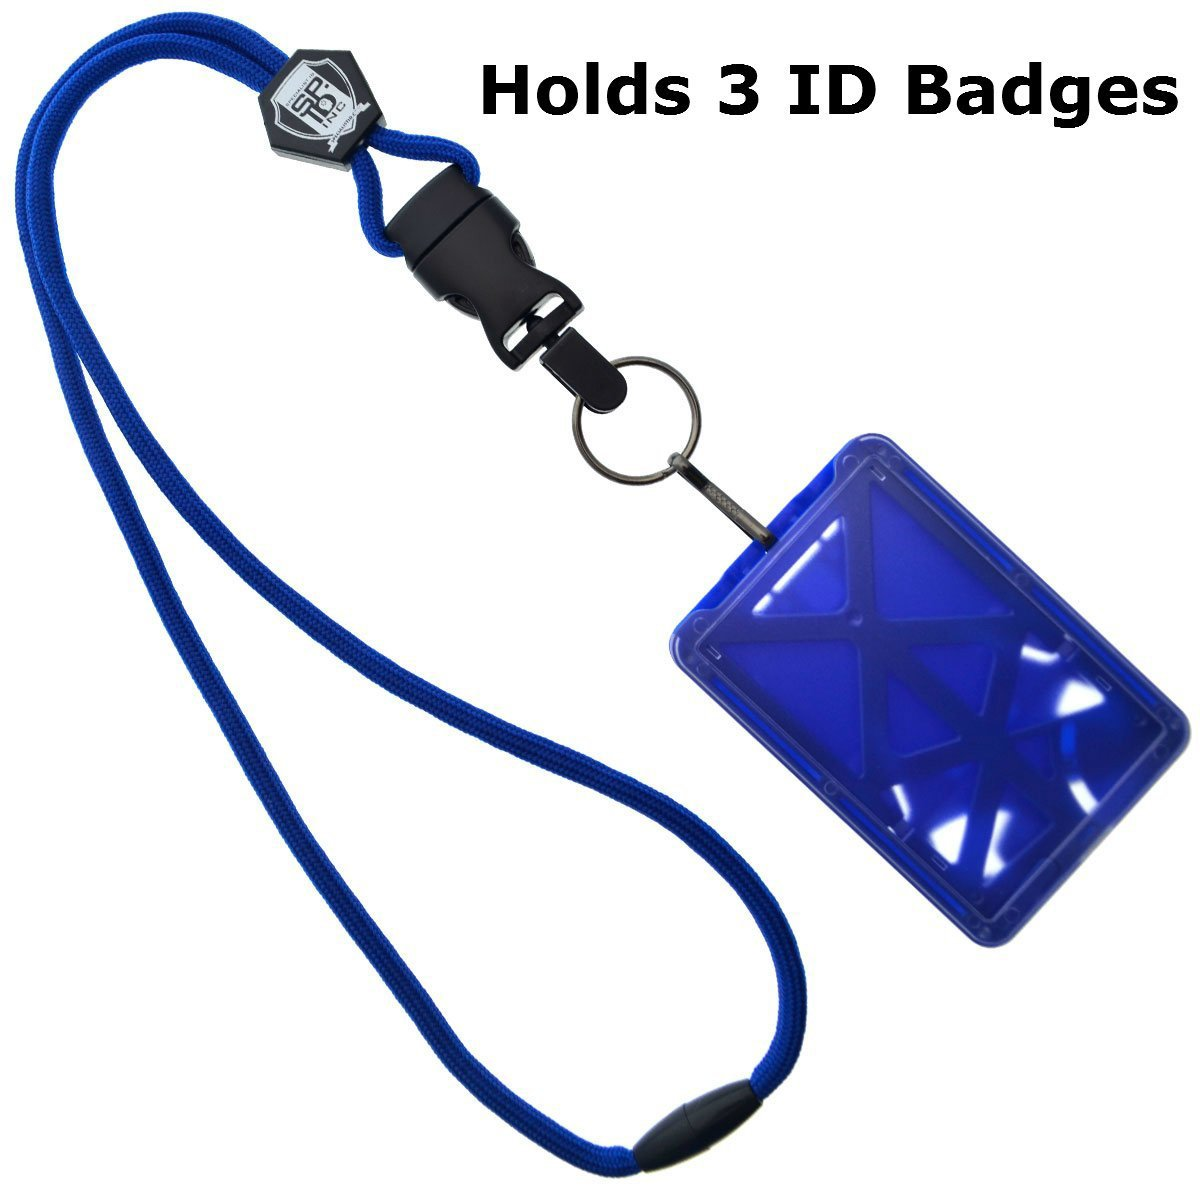 Top Loading THREE ID Card Badge Holder with Heavy Duty Lanyard w/Detachable Metal Clip and Key Ring by Specialist ID, Sold Individually (One Holder / 3 Cards Inside) (Royal Blue) SPID-9070